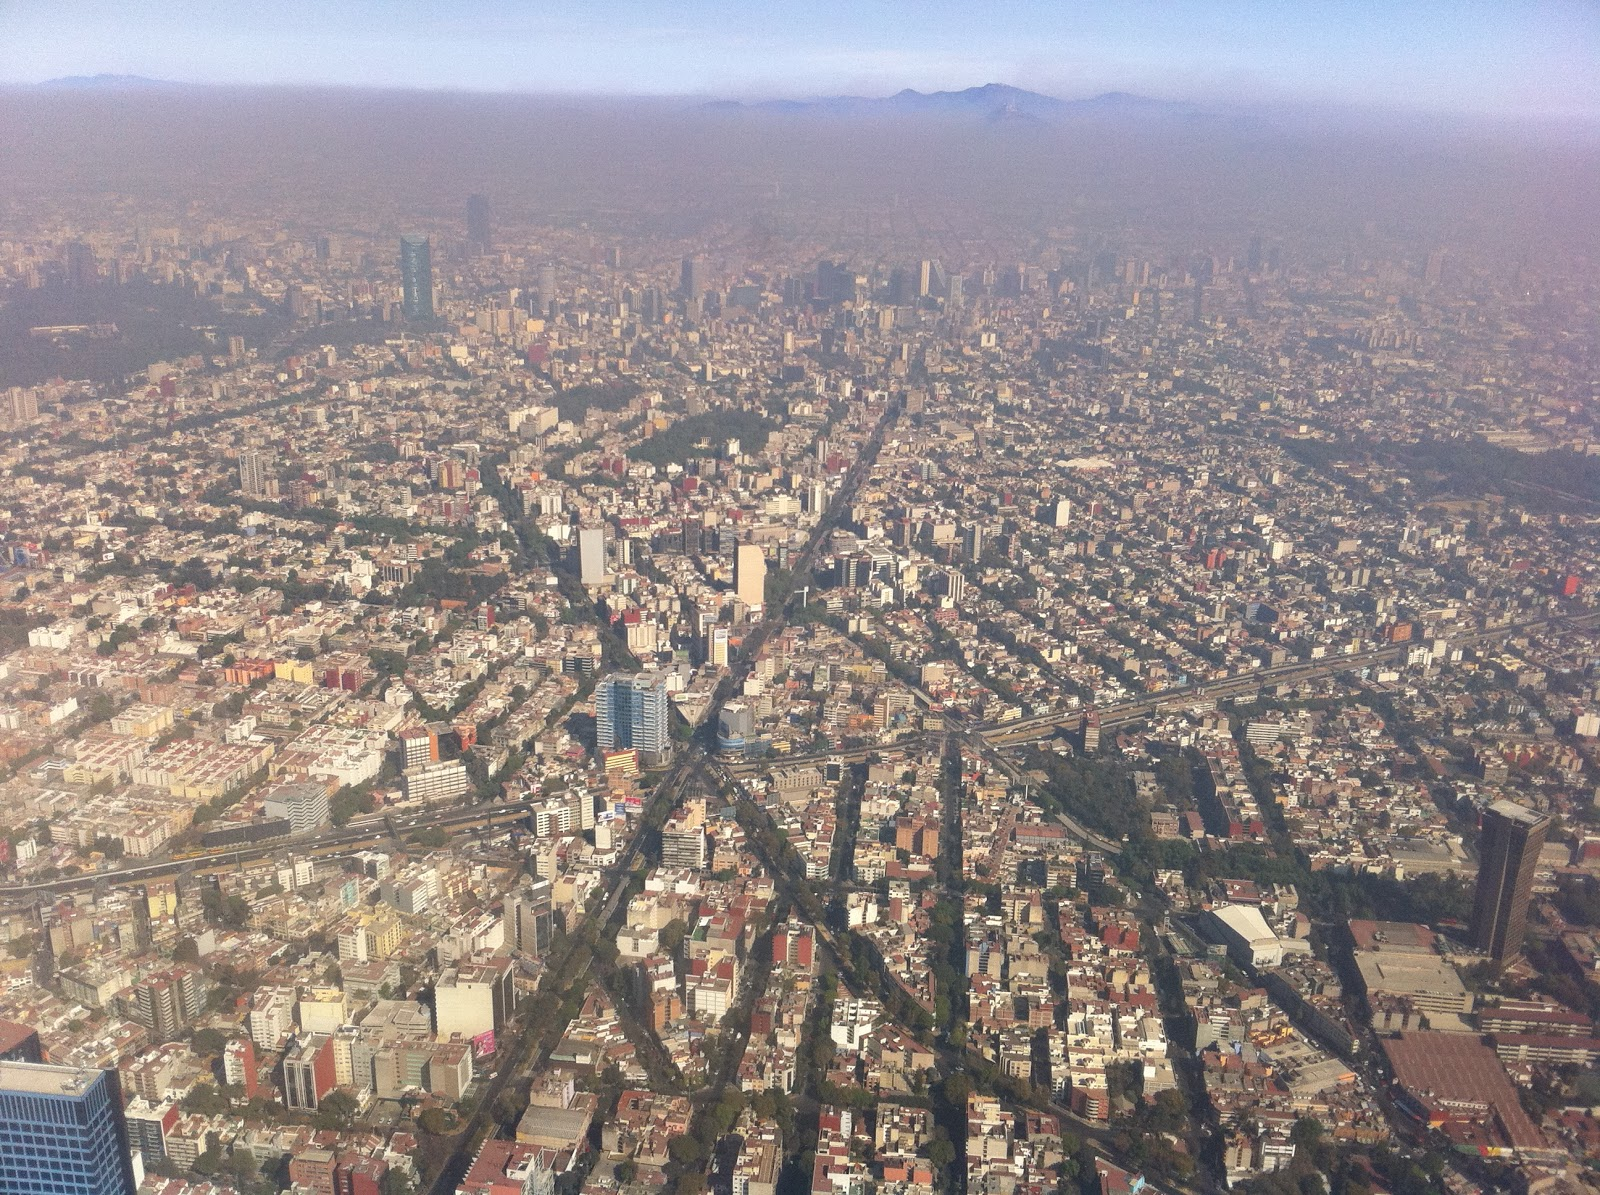 Luckily, most of Mexico's population live in urban areas like Mexico City.